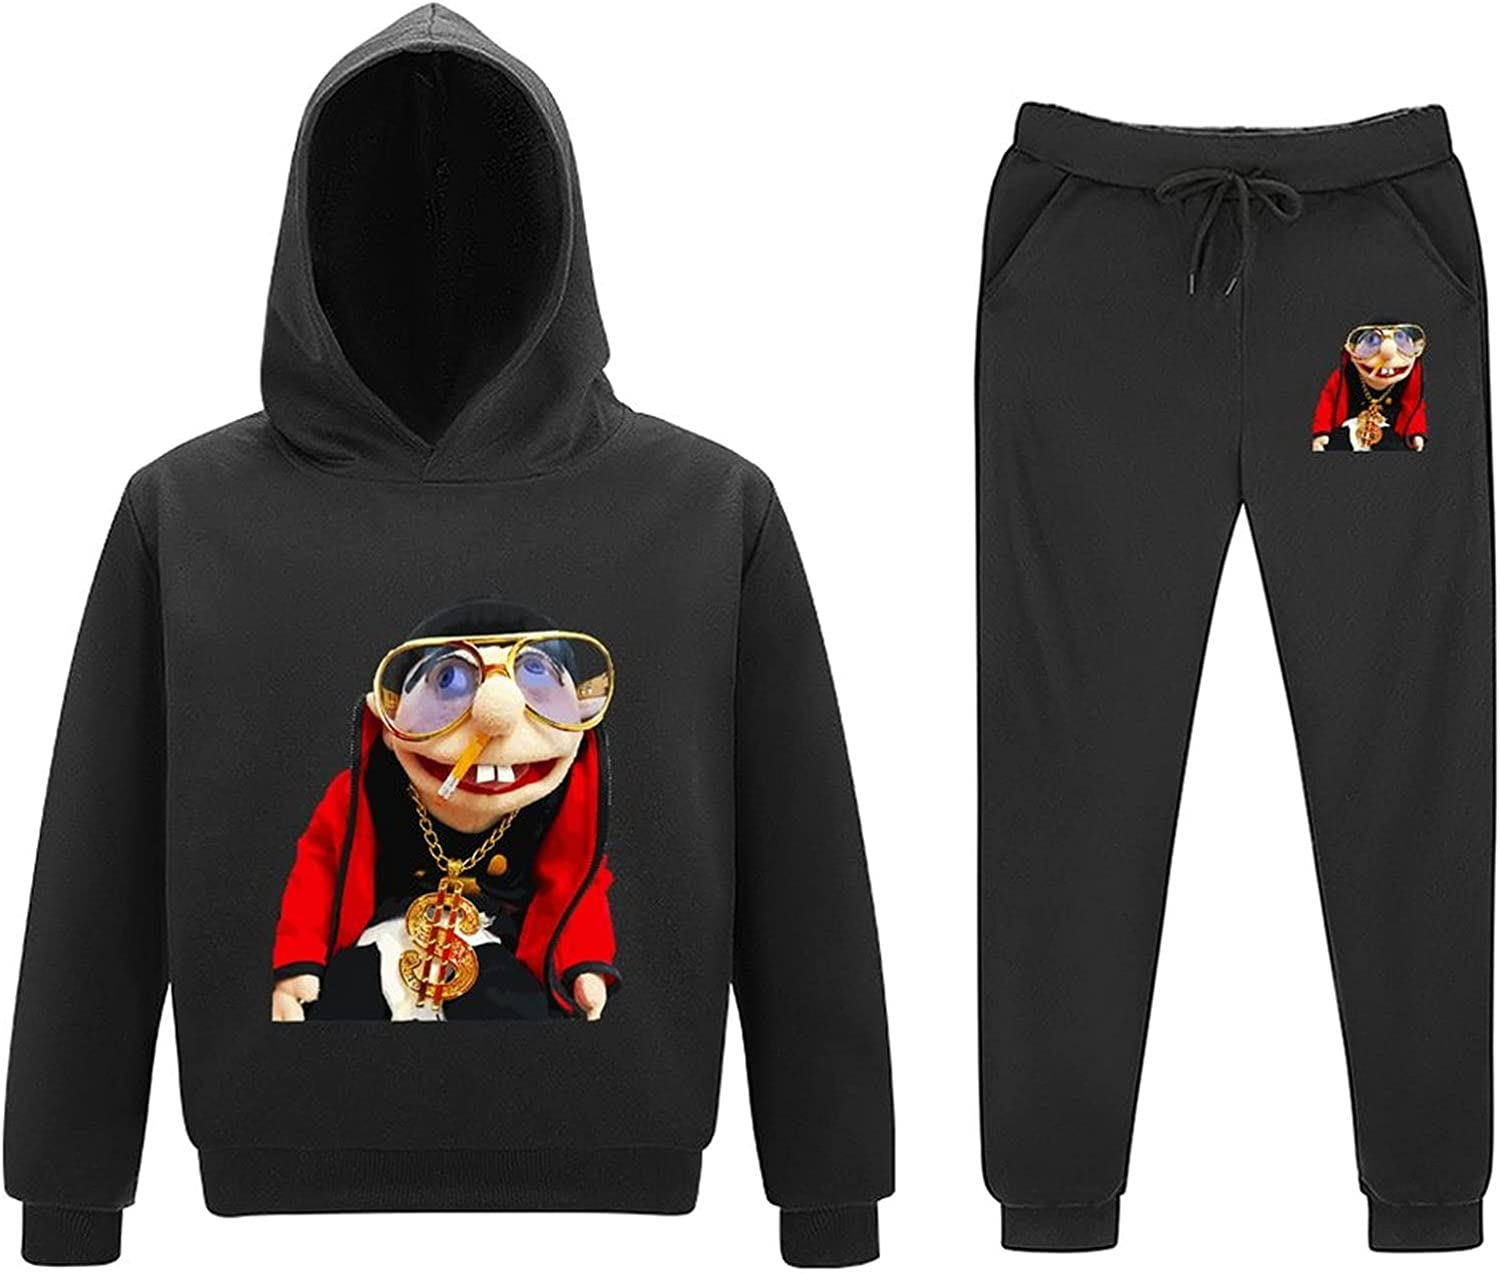 Sm-l Superior Jef-fy Youth Sweater Set Fashion Sports latest Casual Hooded Anime